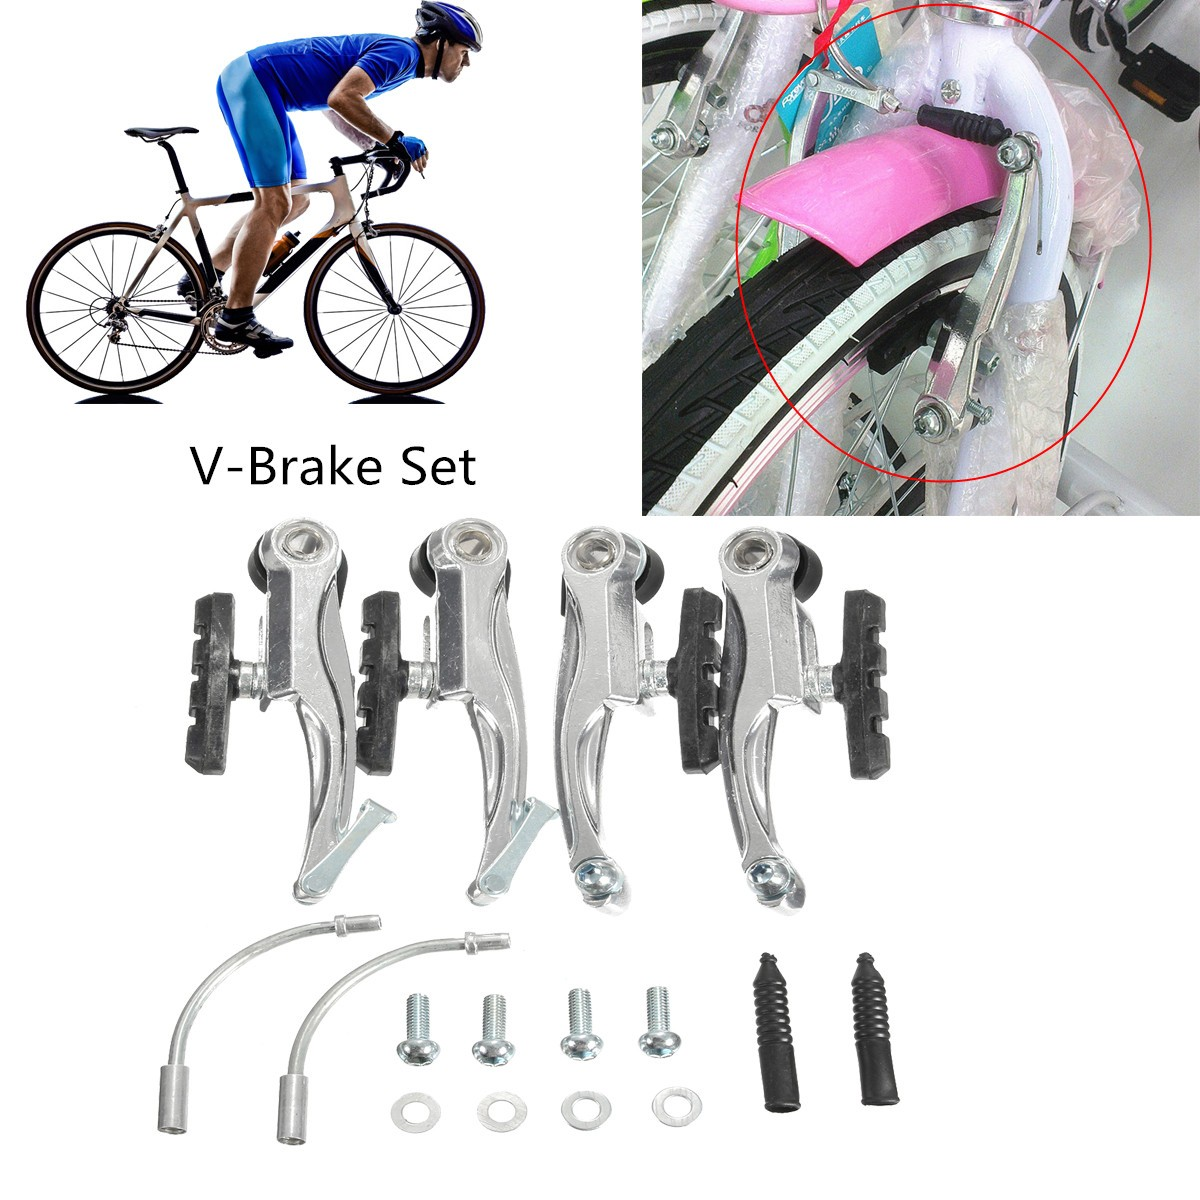 Alloy Front & Rear V Brake Levers Caliper Set Tail Brake for Mountain Bicycle